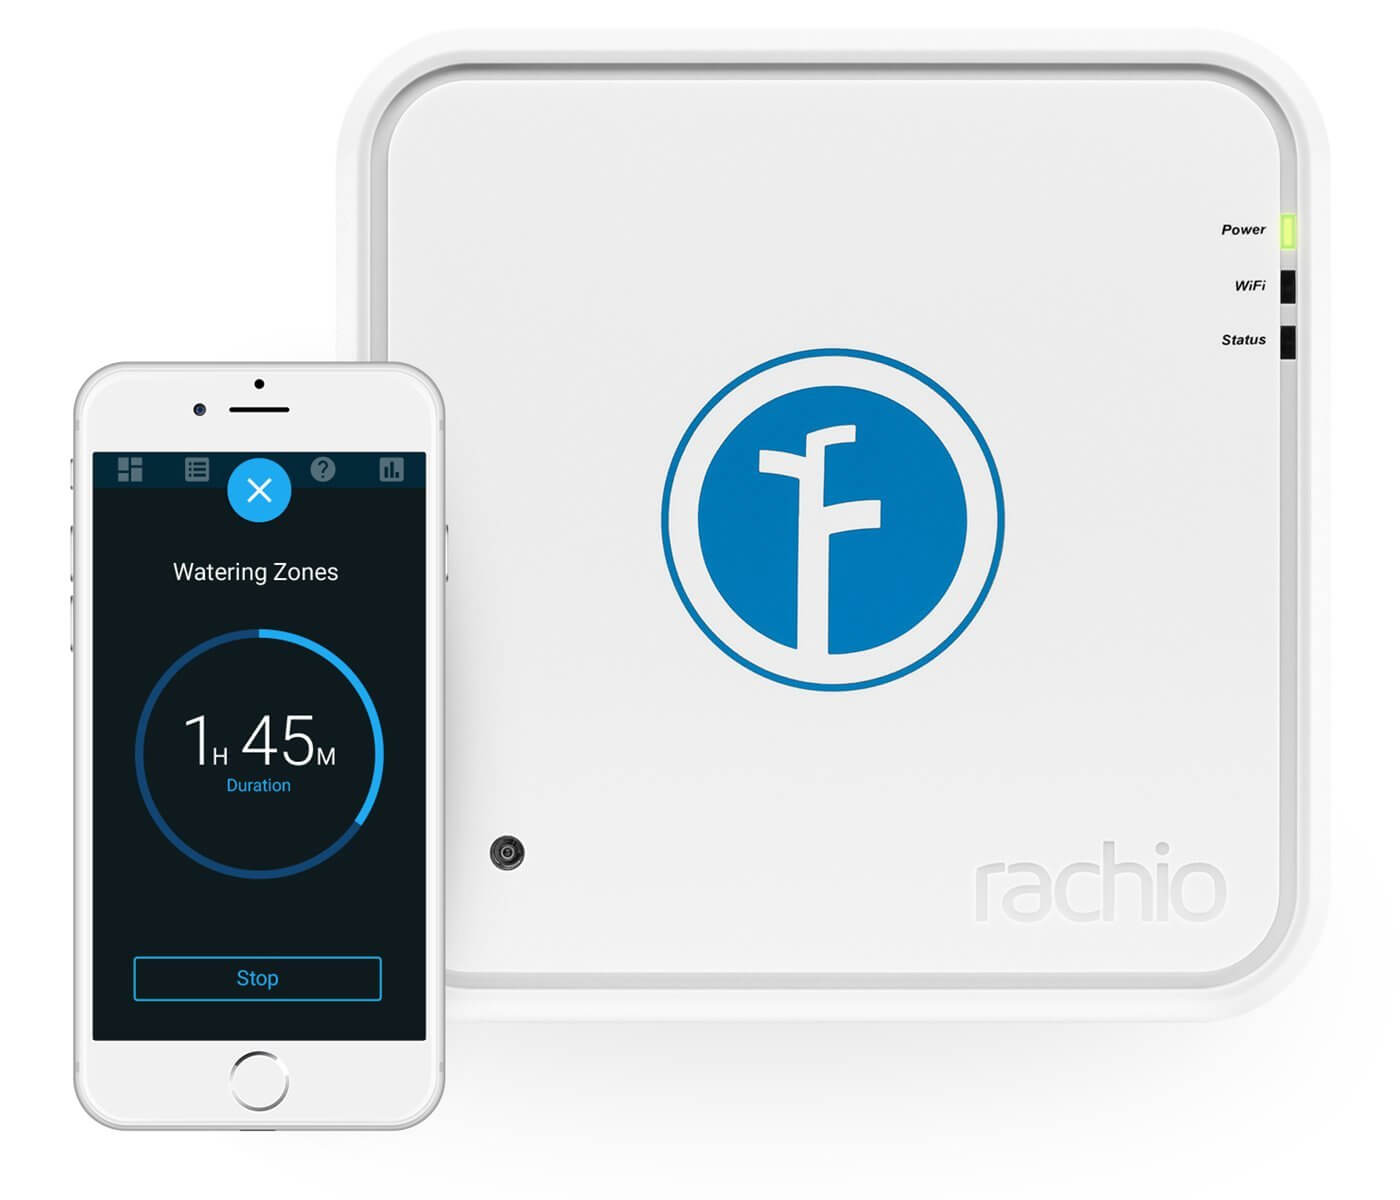 Rachio Smart Sprinkler